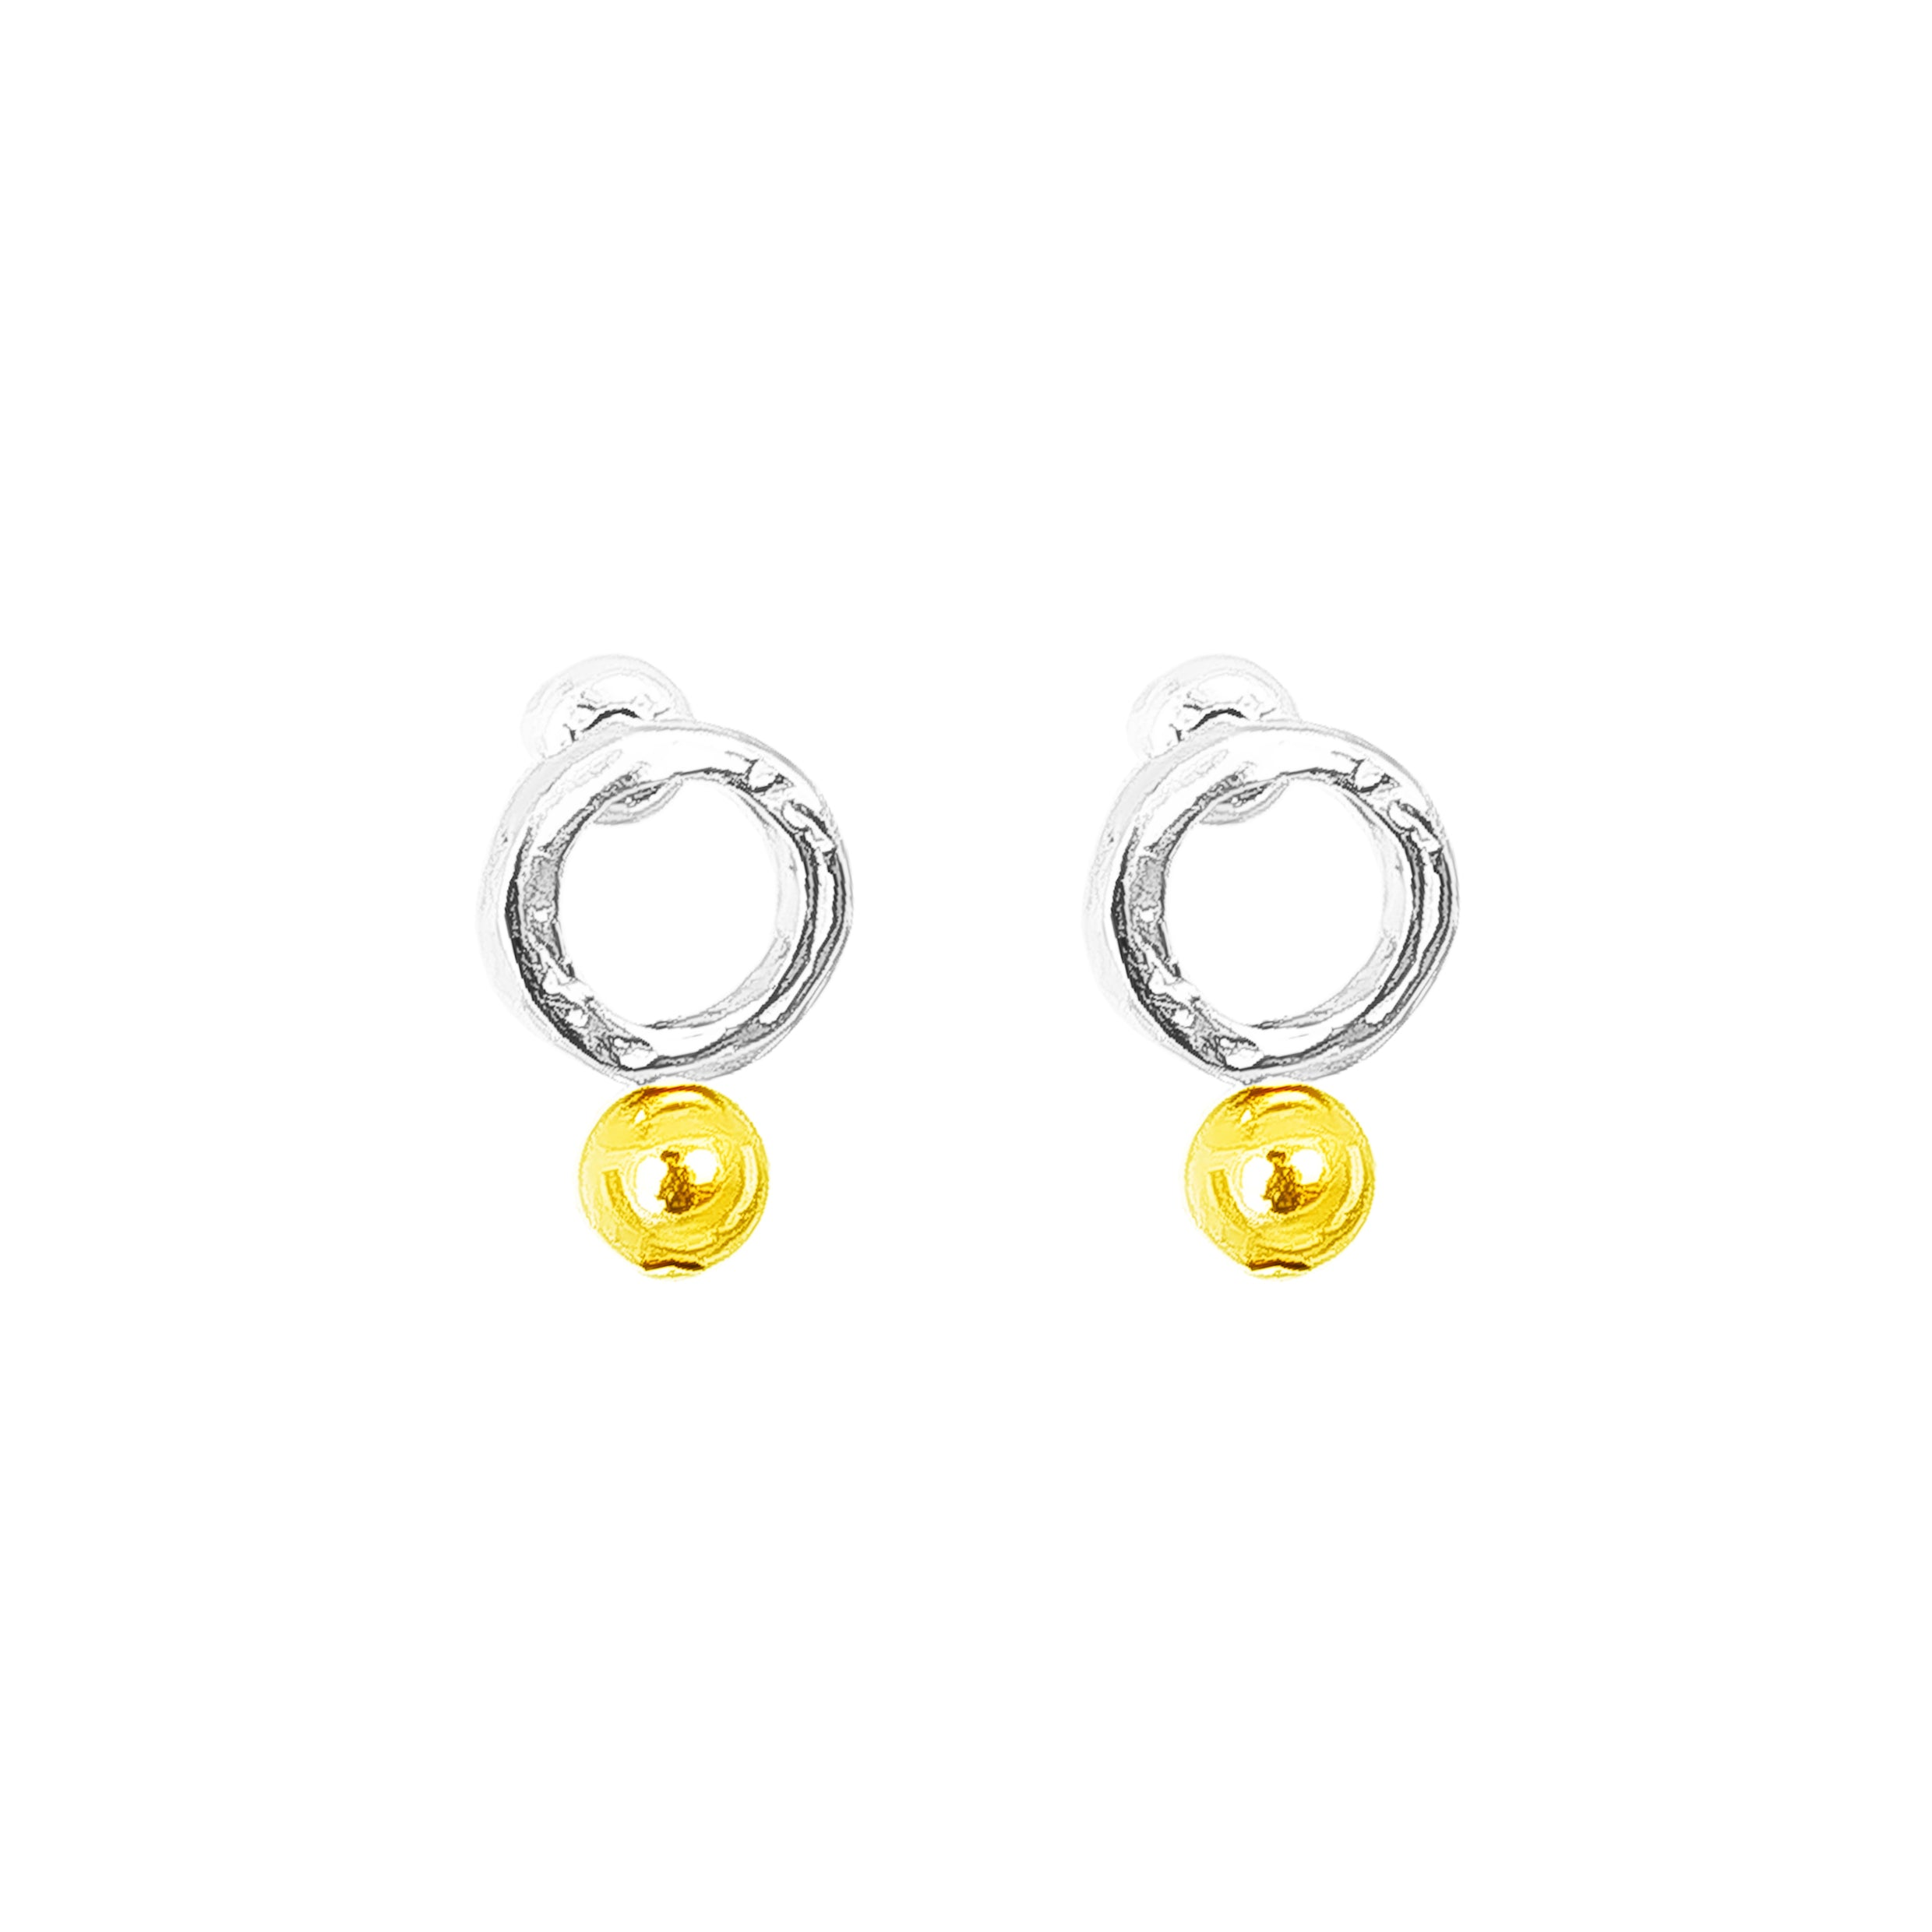 Radison Fine Feature Stud Earrings | Polished Gold Detail